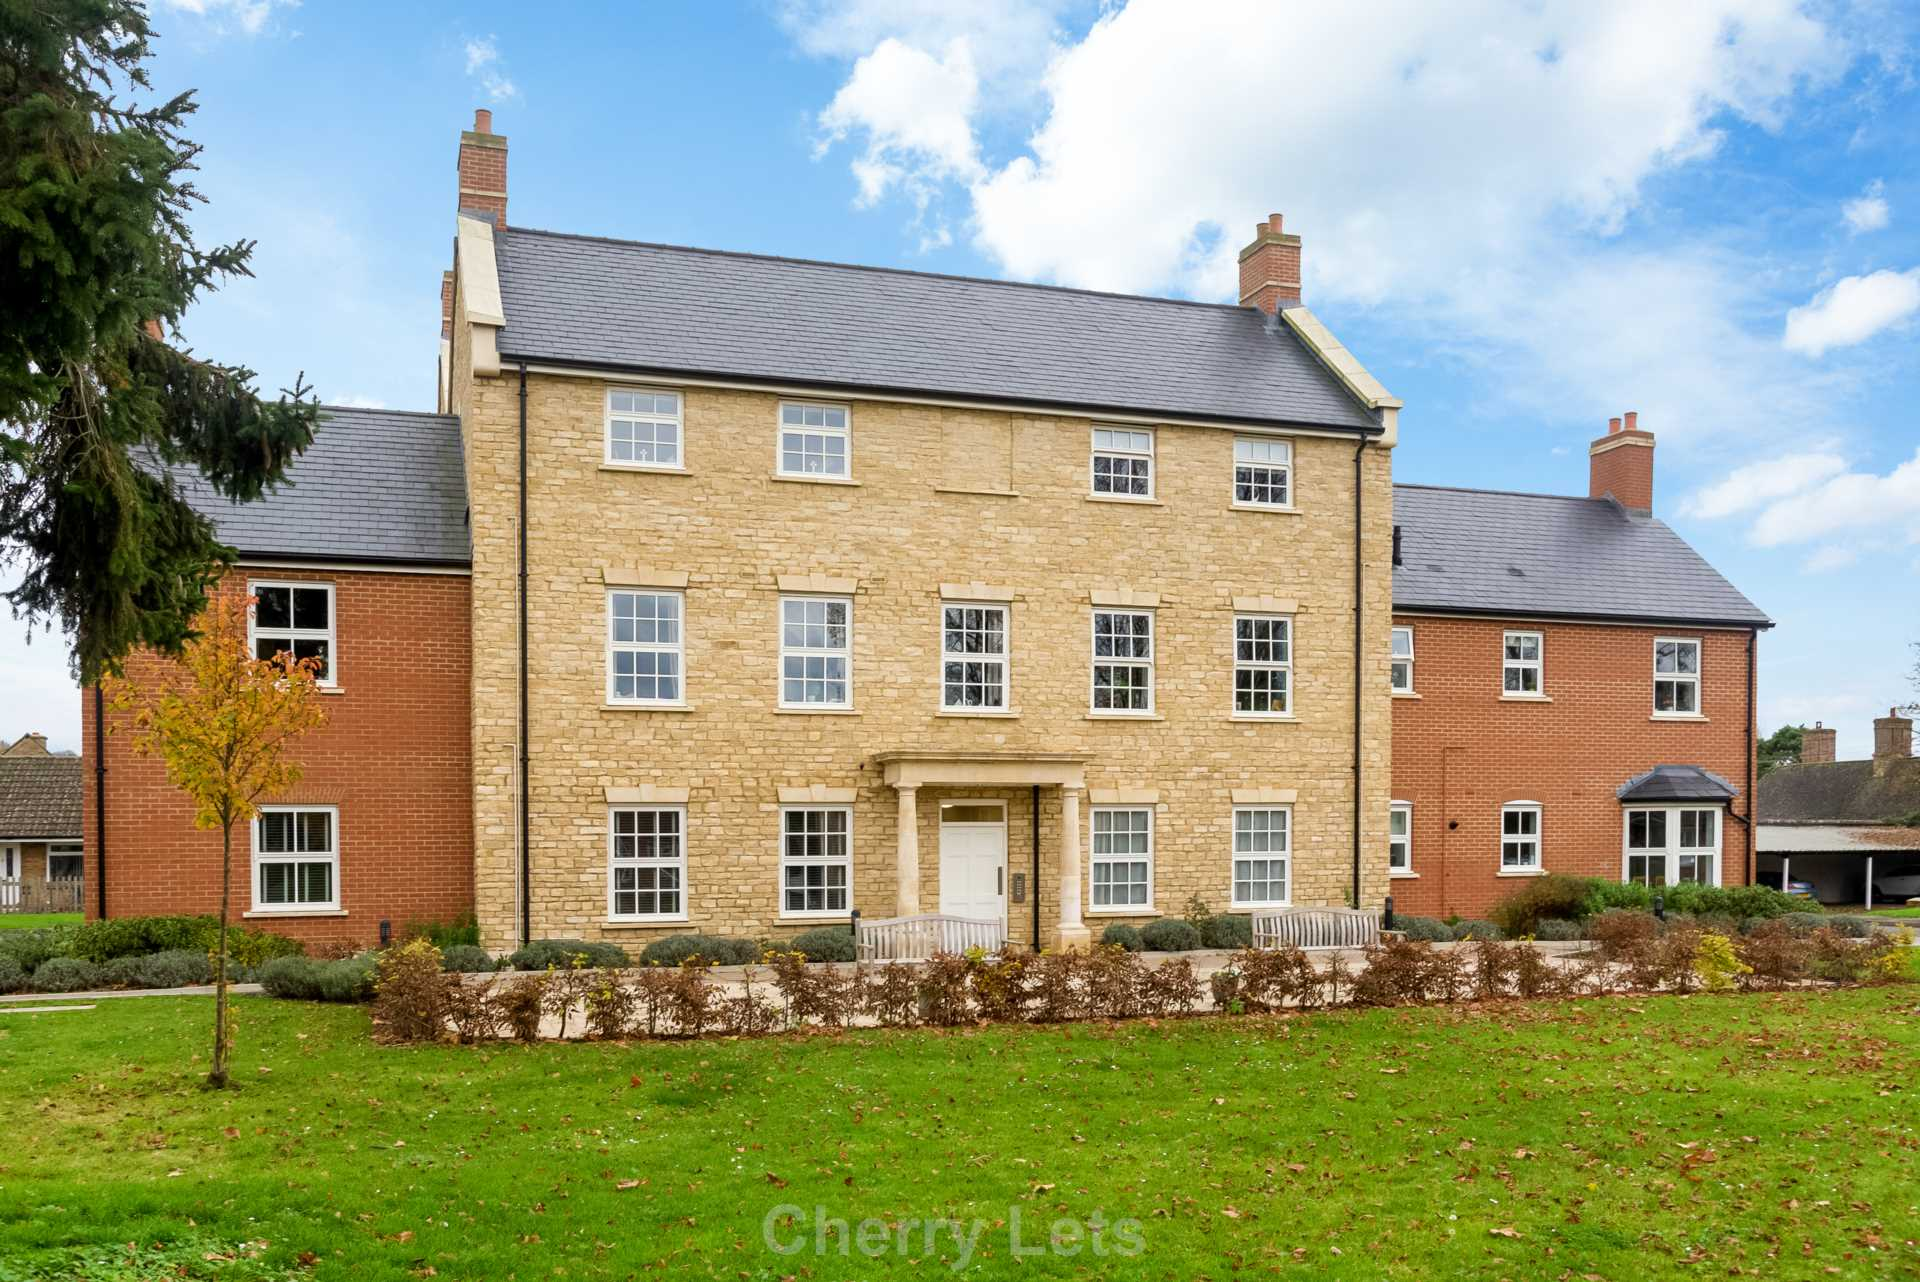 2 bed apartment to rent in Astrop Grange, Kings Sutton, OX17 1